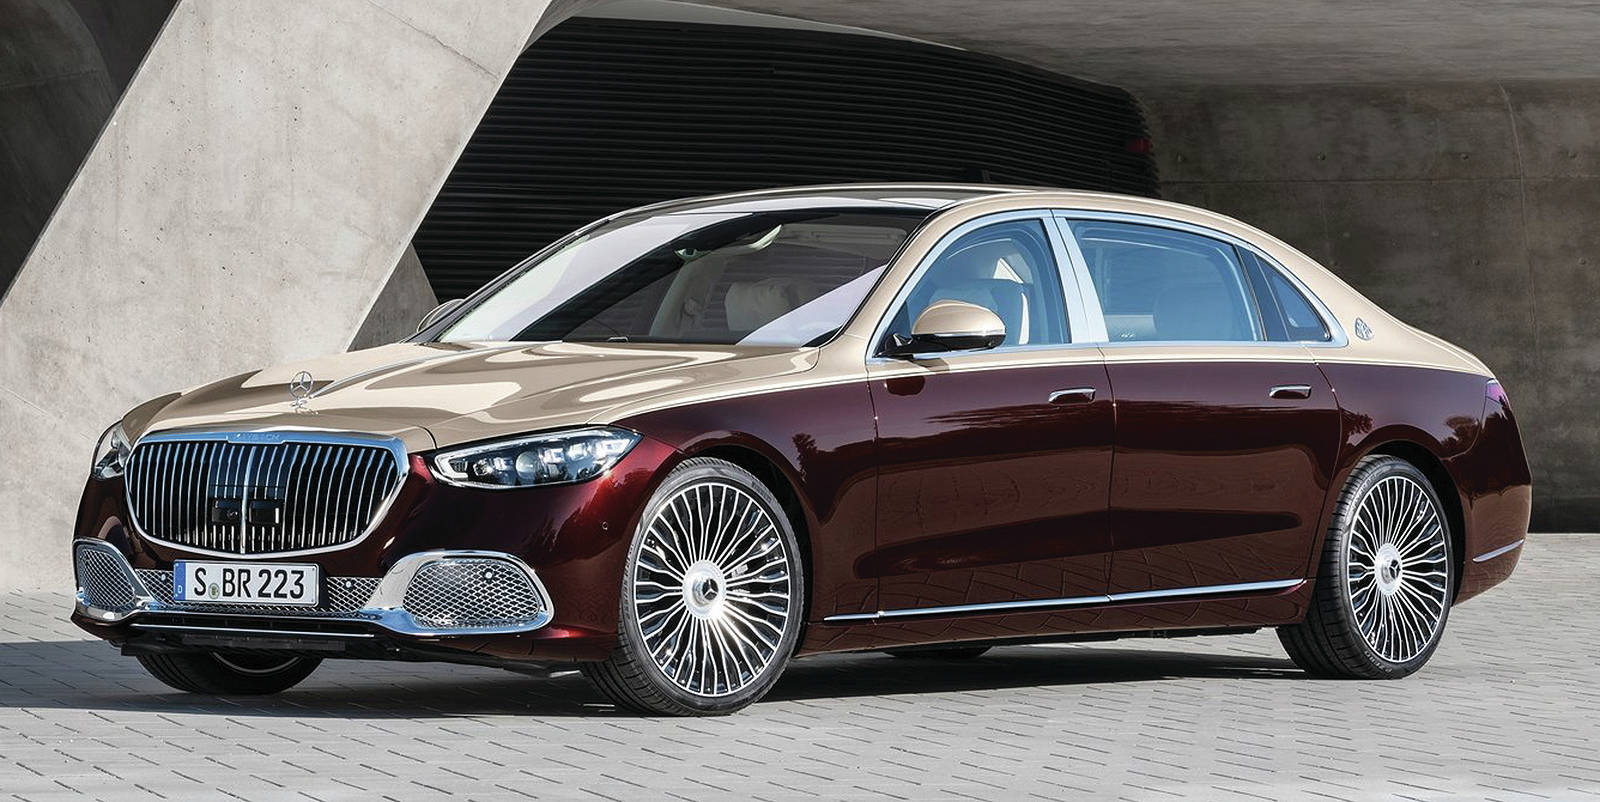 In case the S-Class sedan isn't quite luxurious enough, there's the new Maybach S 580. PHOTO: MAYBACH